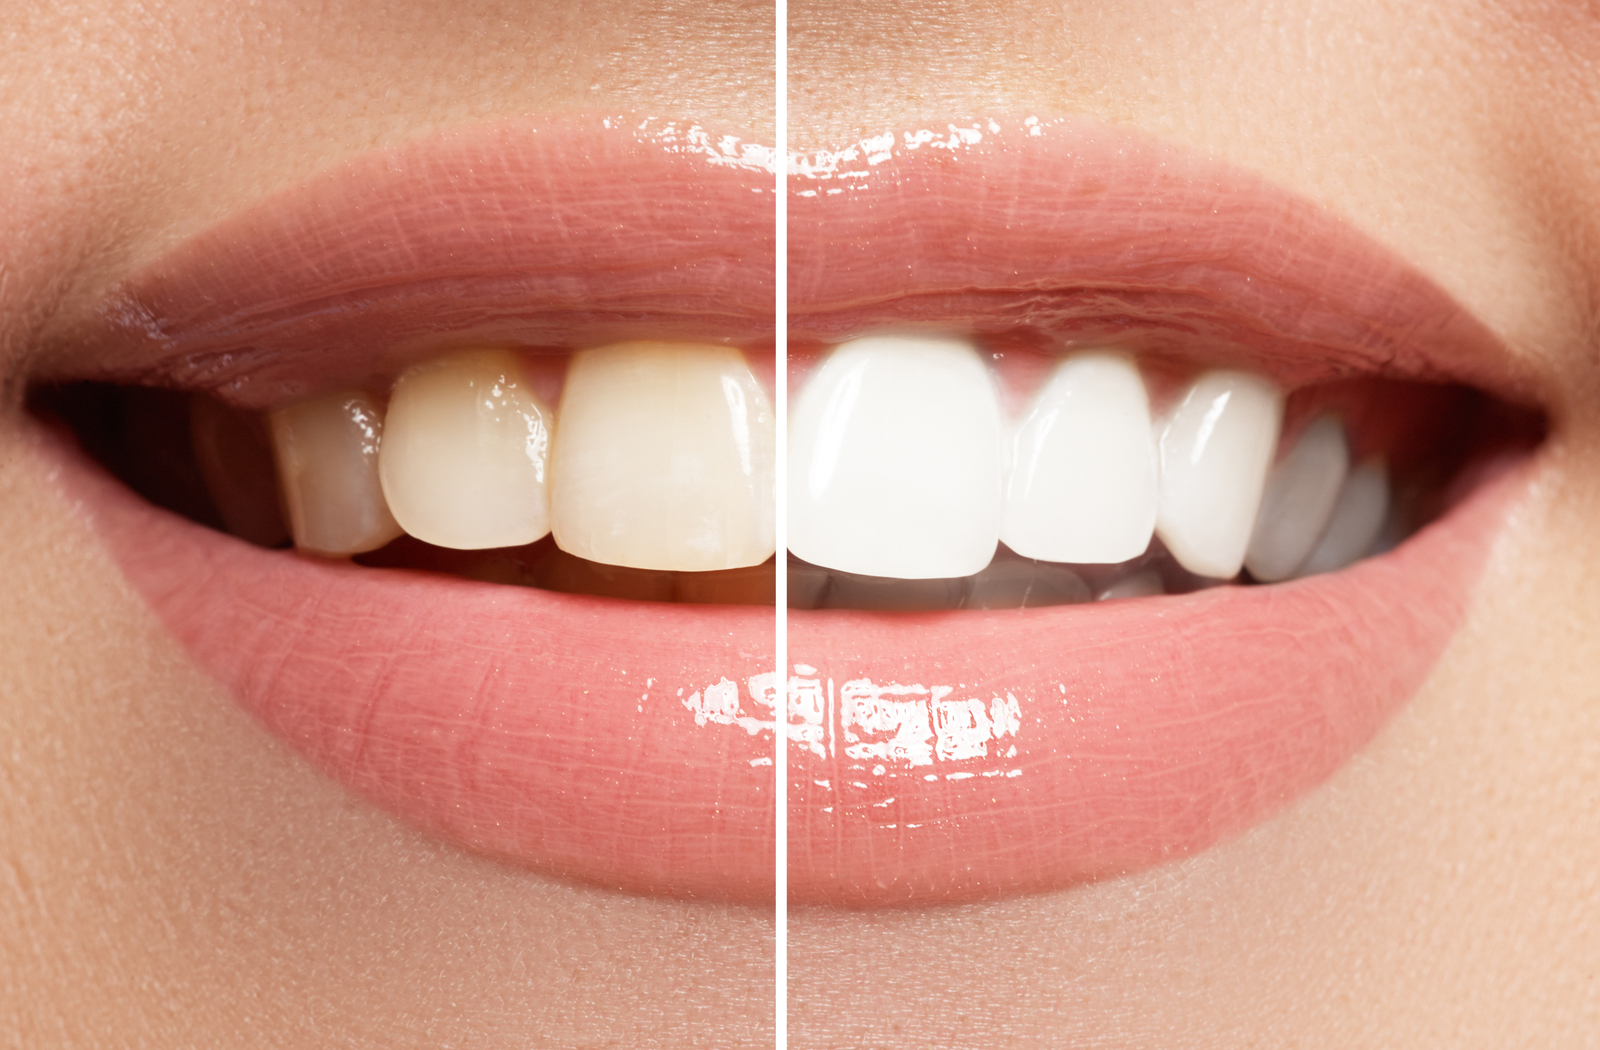 Before and after of woman's teeth for teeth whitening.